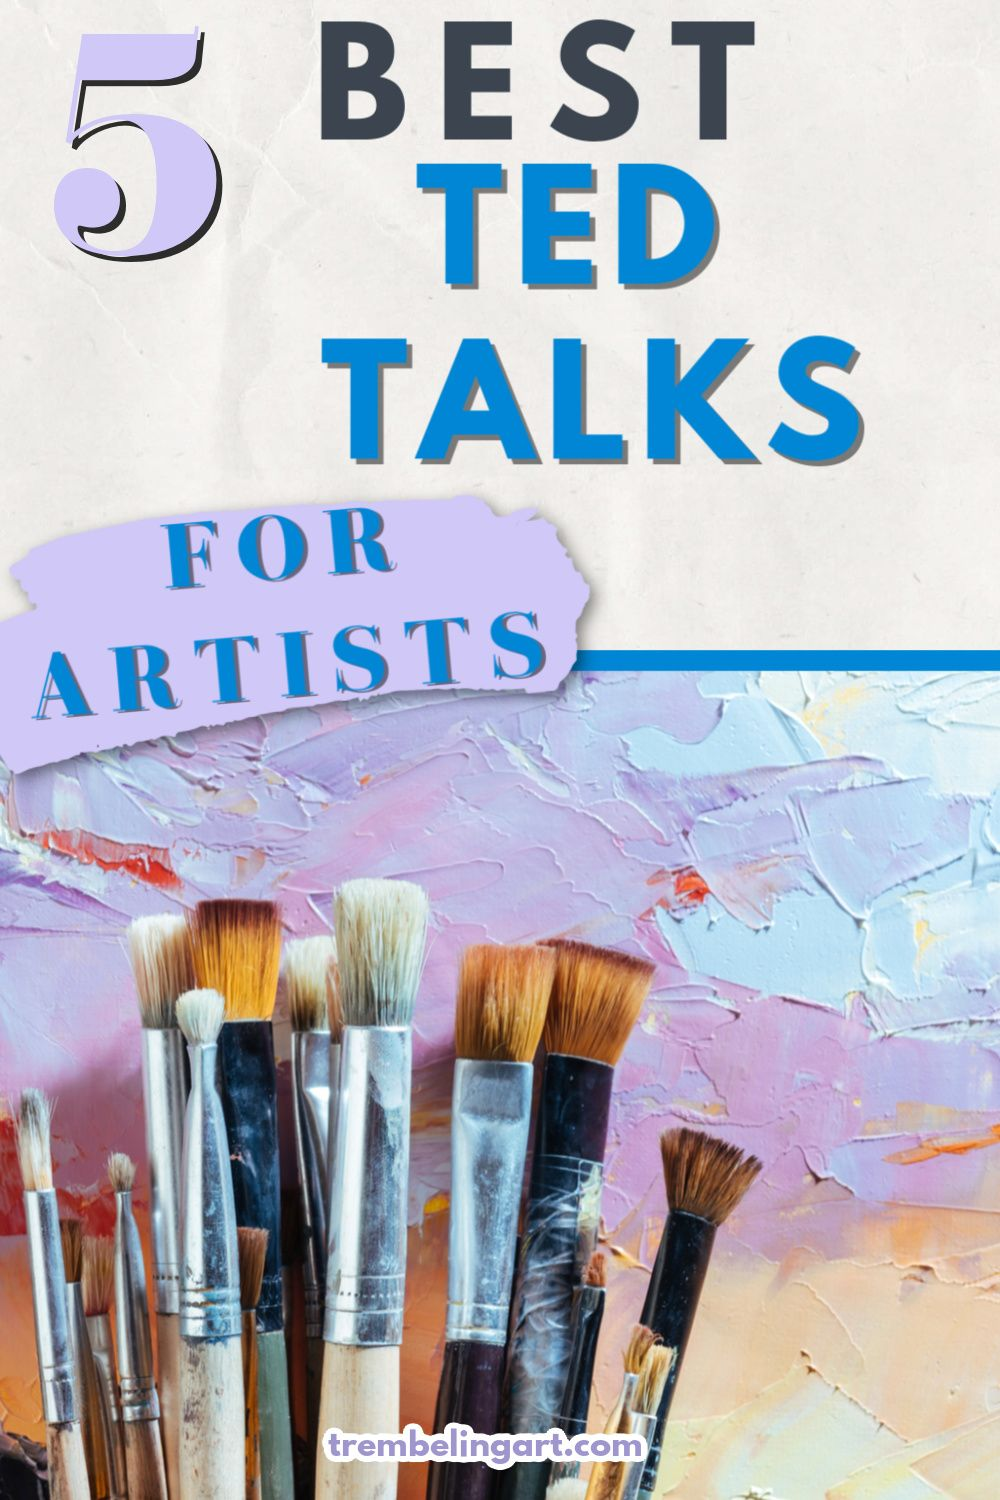 Many artists like to listen to books,pod casts or music as they work. Listening to Ted Talks by artists is also another great way to stay informed and motivated. Click to find some great Ted Talks by artists. #TedTalks #artistinspiration #trembelingart